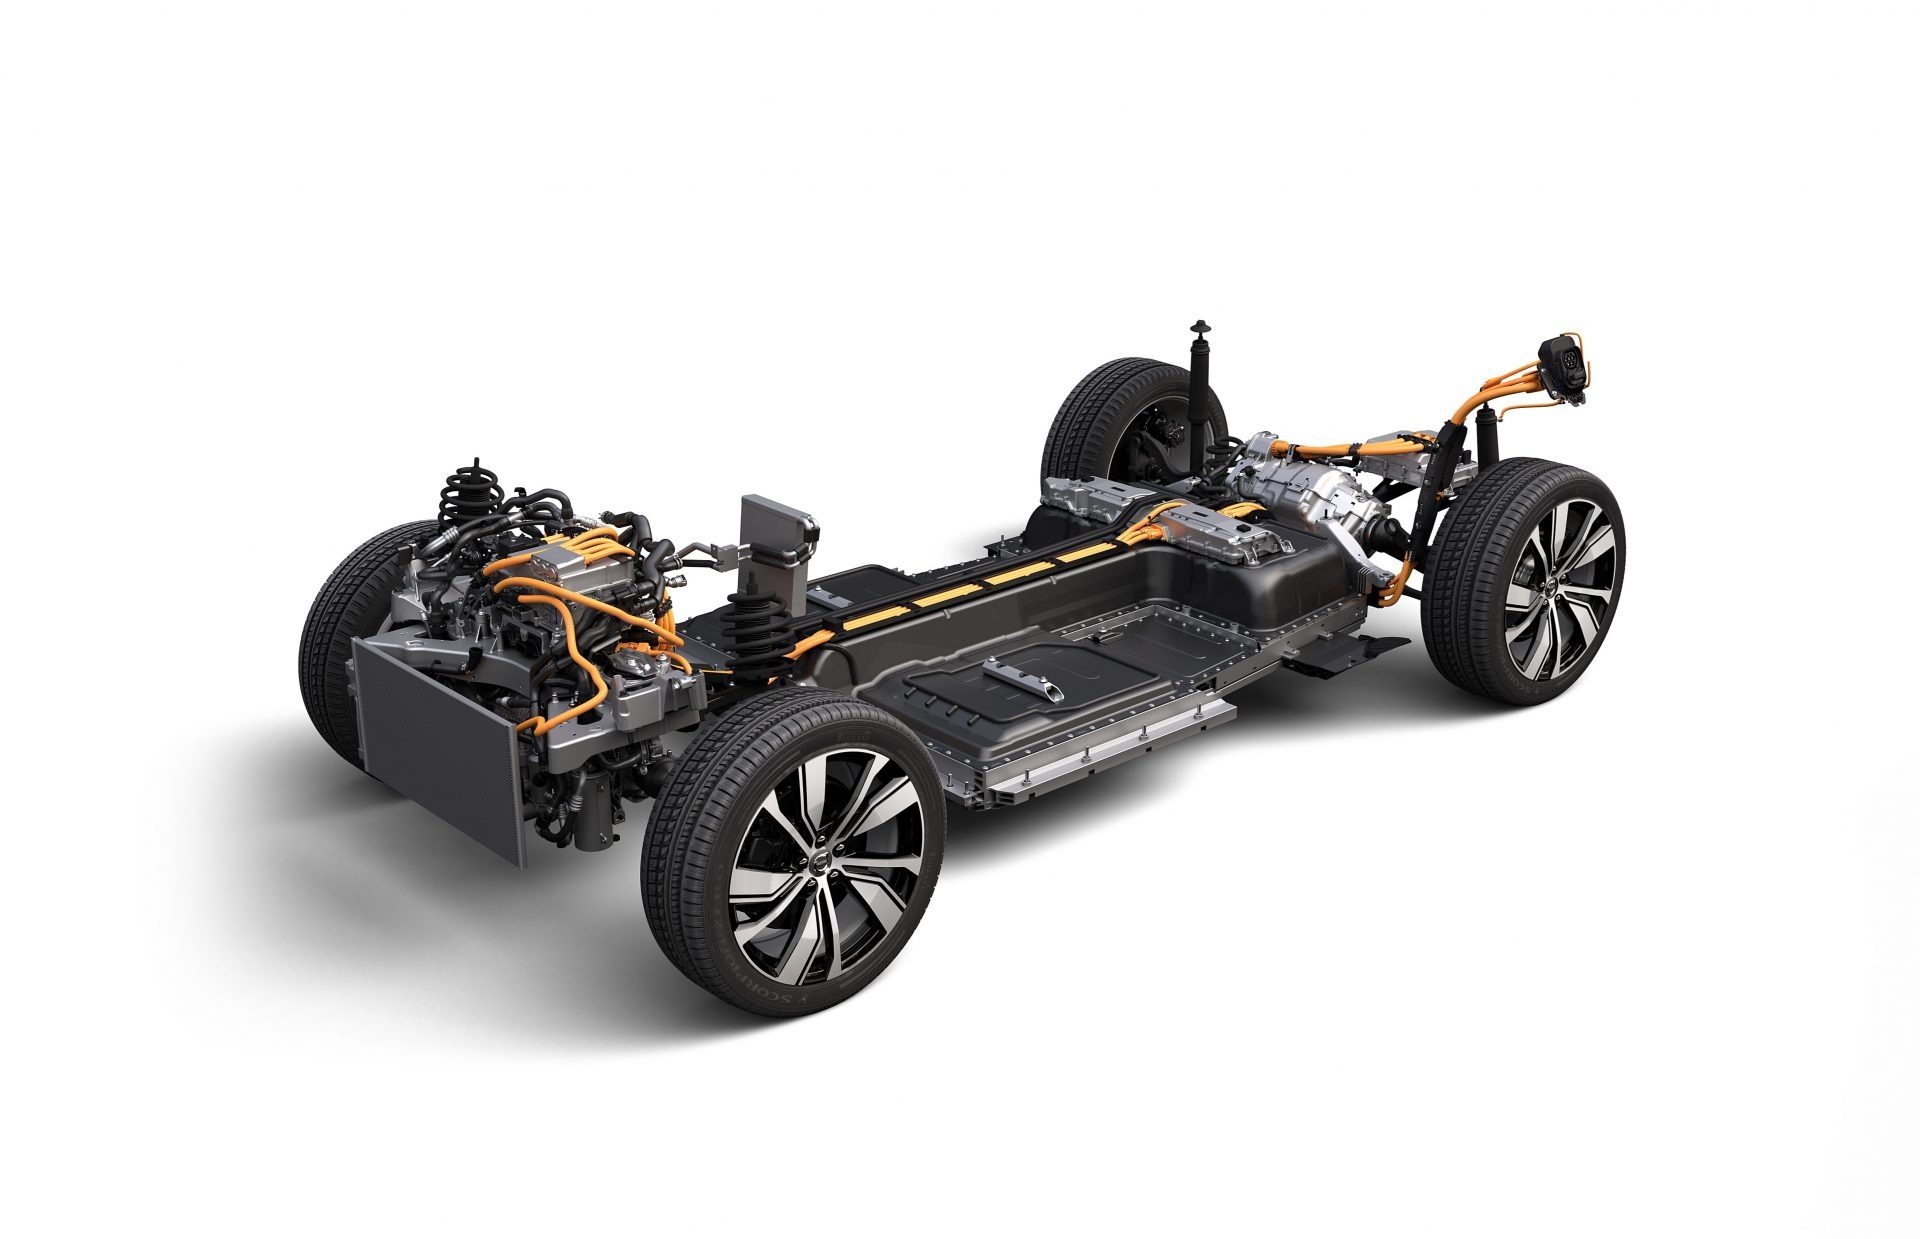 258119_A_display_model_of_the_fully_electric_XC40_SUV_Volvo_s_first_electric_car